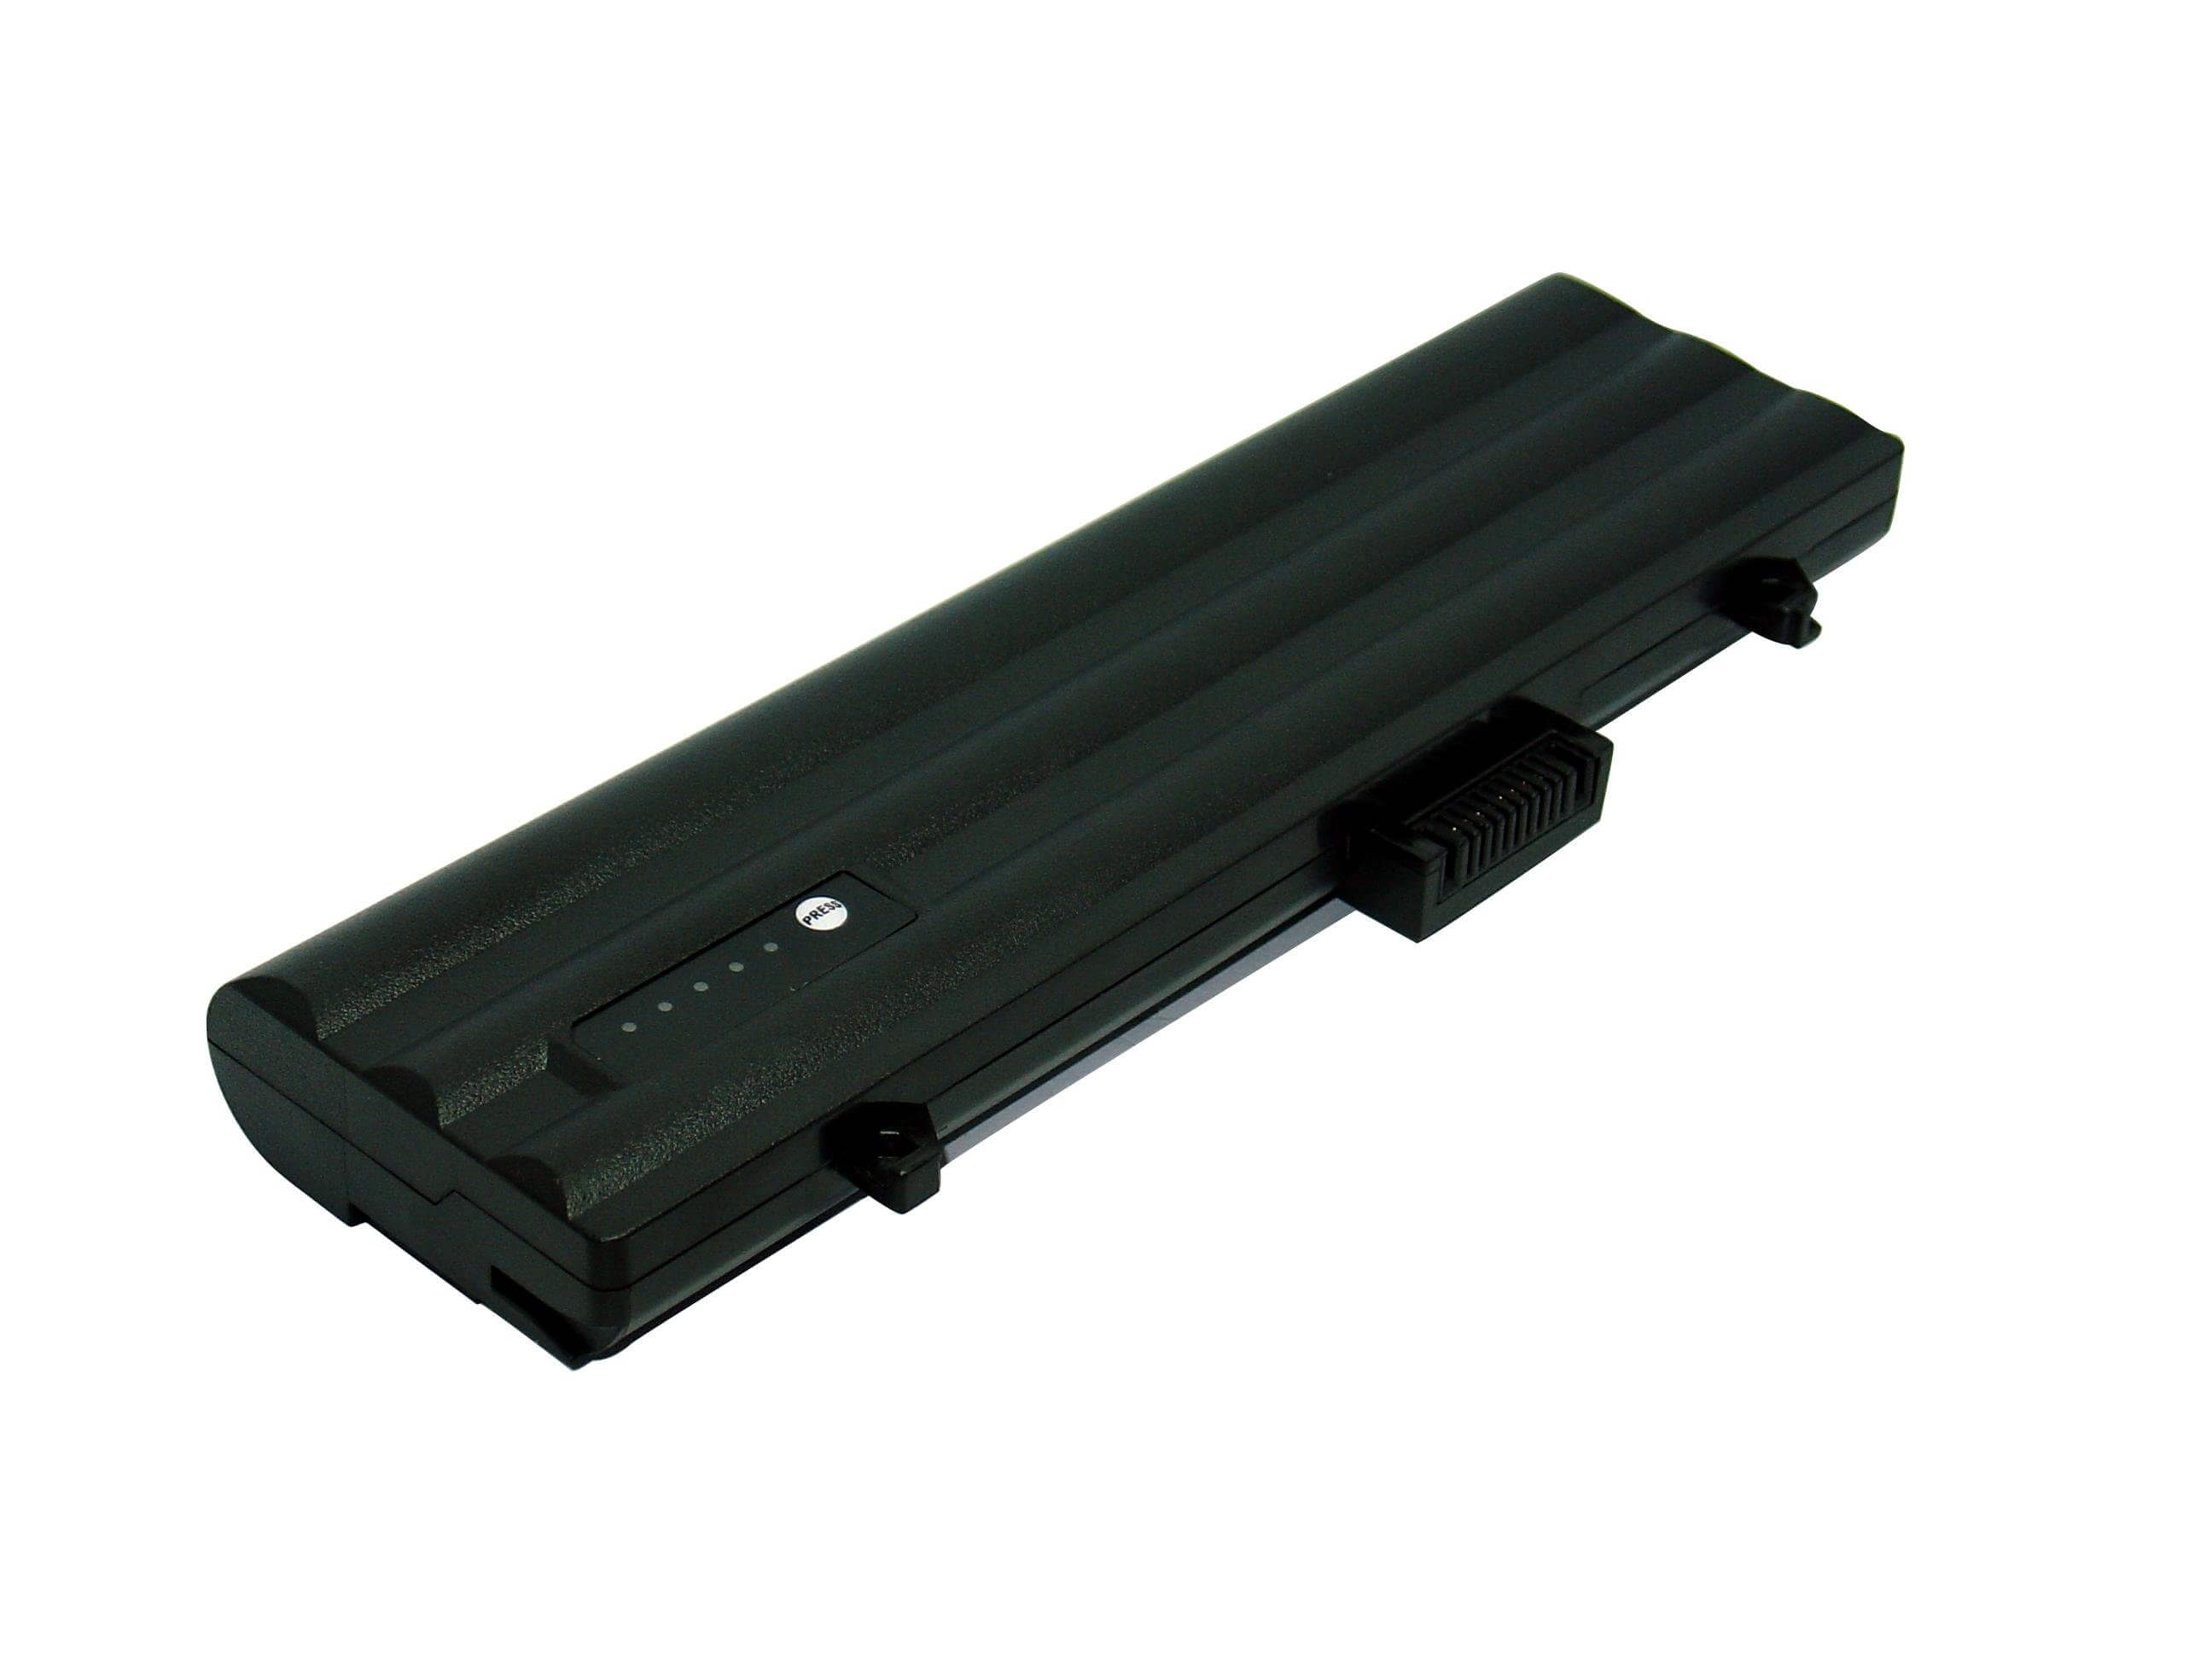 Dell Inspiron 630m batteri 451-10284/XPS M140